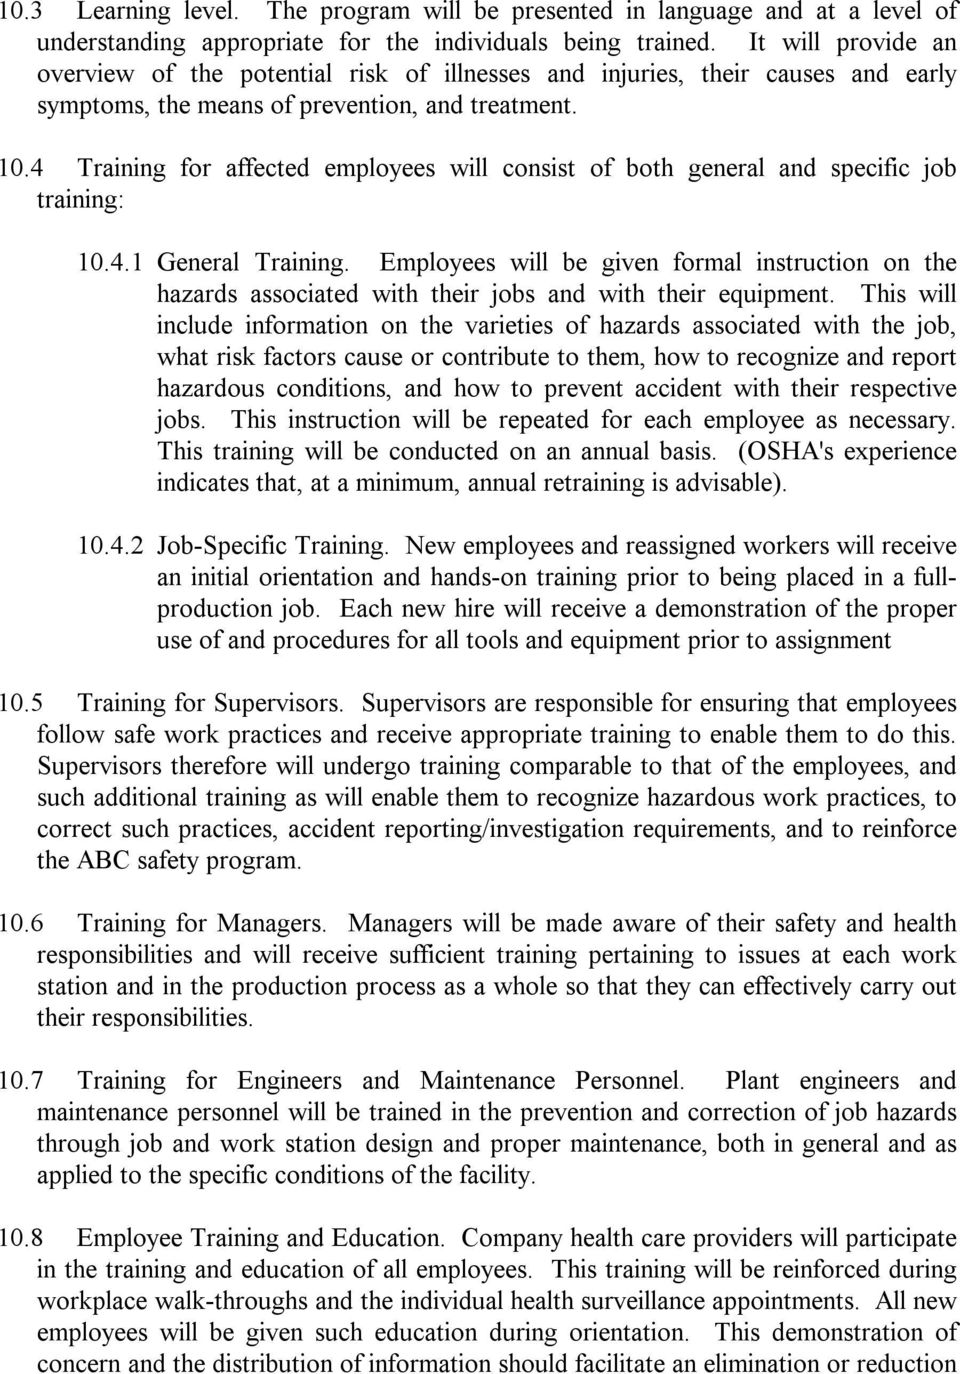 4 Training for affected employees will consist of both general and specific job training: 10.4.1 General Training.